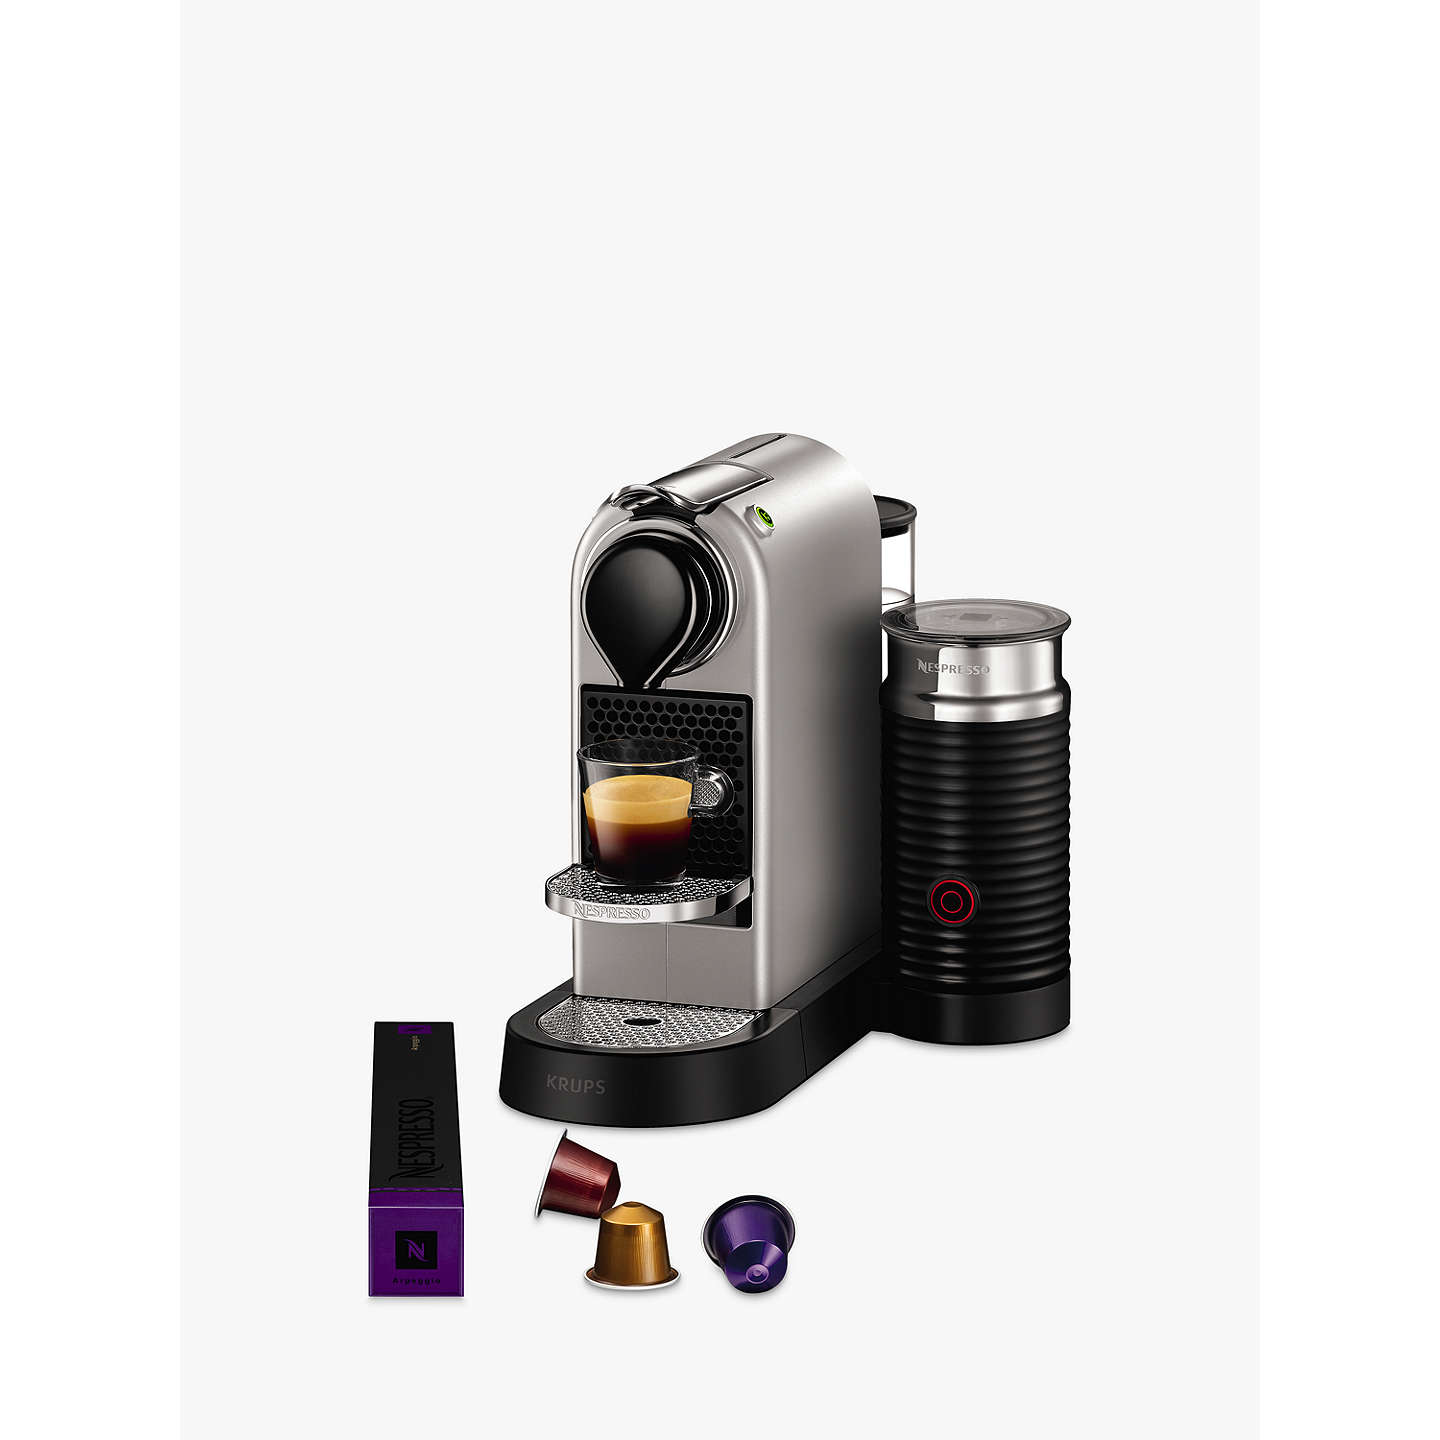 nespresso citiz milk coffee machine by krups with milk frother silver at john lewis. Black Bedroom Furniture Sets. Home Design Ideas